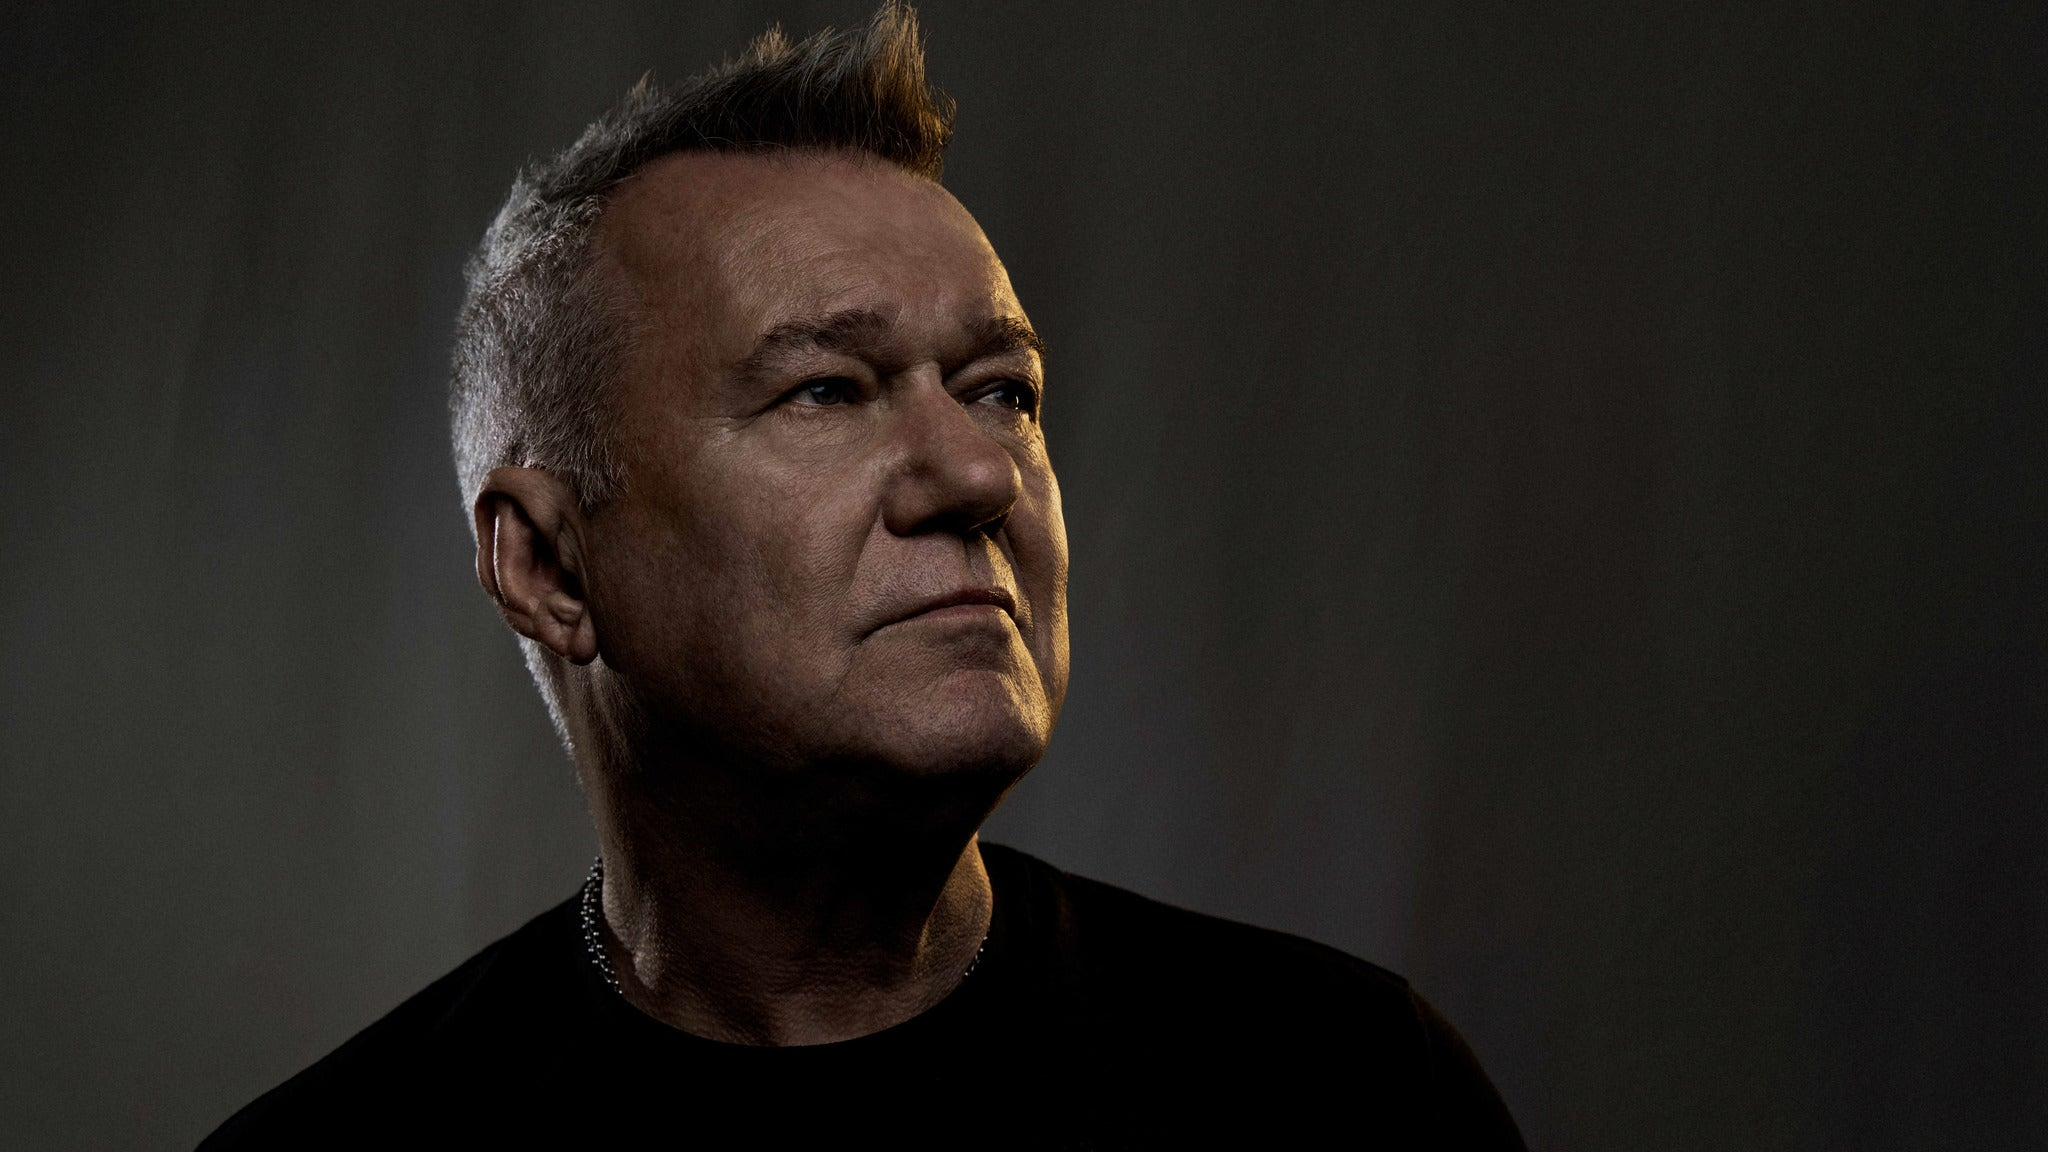 Image used with permission from Ticketmaster | Jimmy Barnes - Flesh & Blood Tour tickets